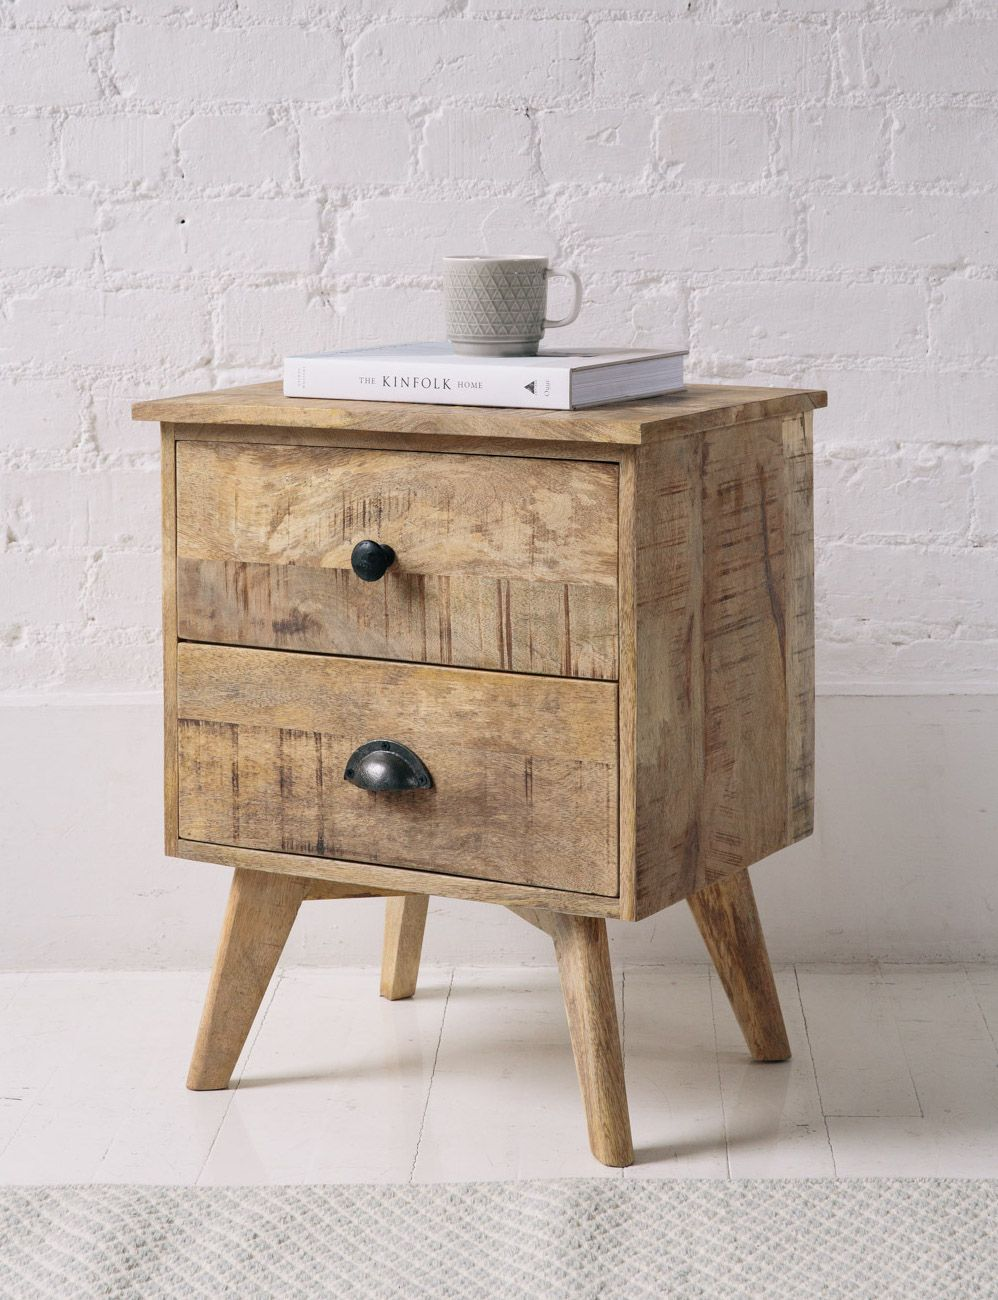 Stockholm bedside table buy online now from rose grey eclectic stockholm bedside table buy online now from rose grey eclectic home accessories and watchthetrailerfo